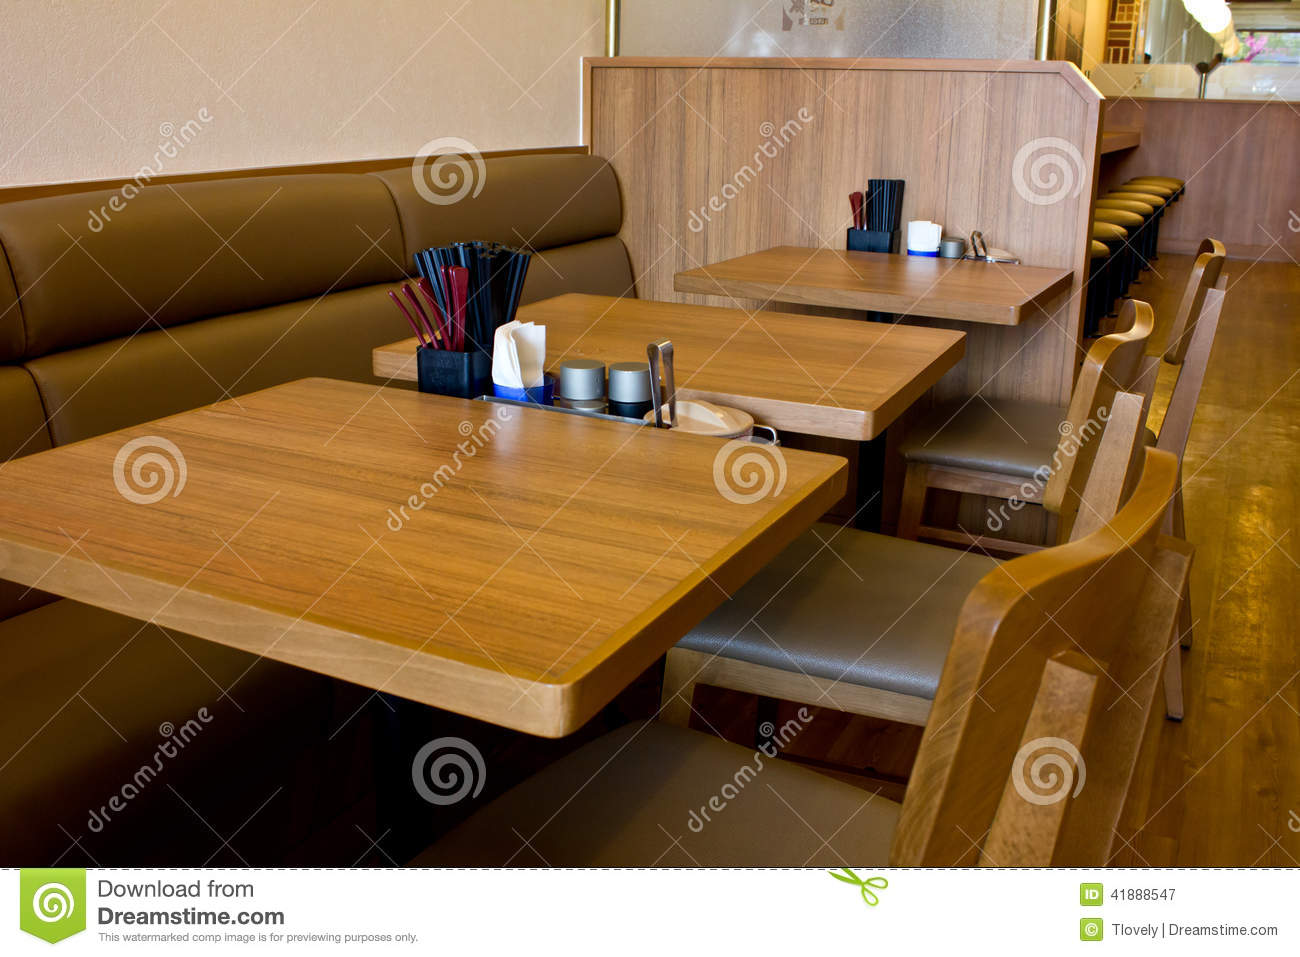 Table And Chair Design Restaurant Stock Image Image Of High - Table and chair design for restaurant